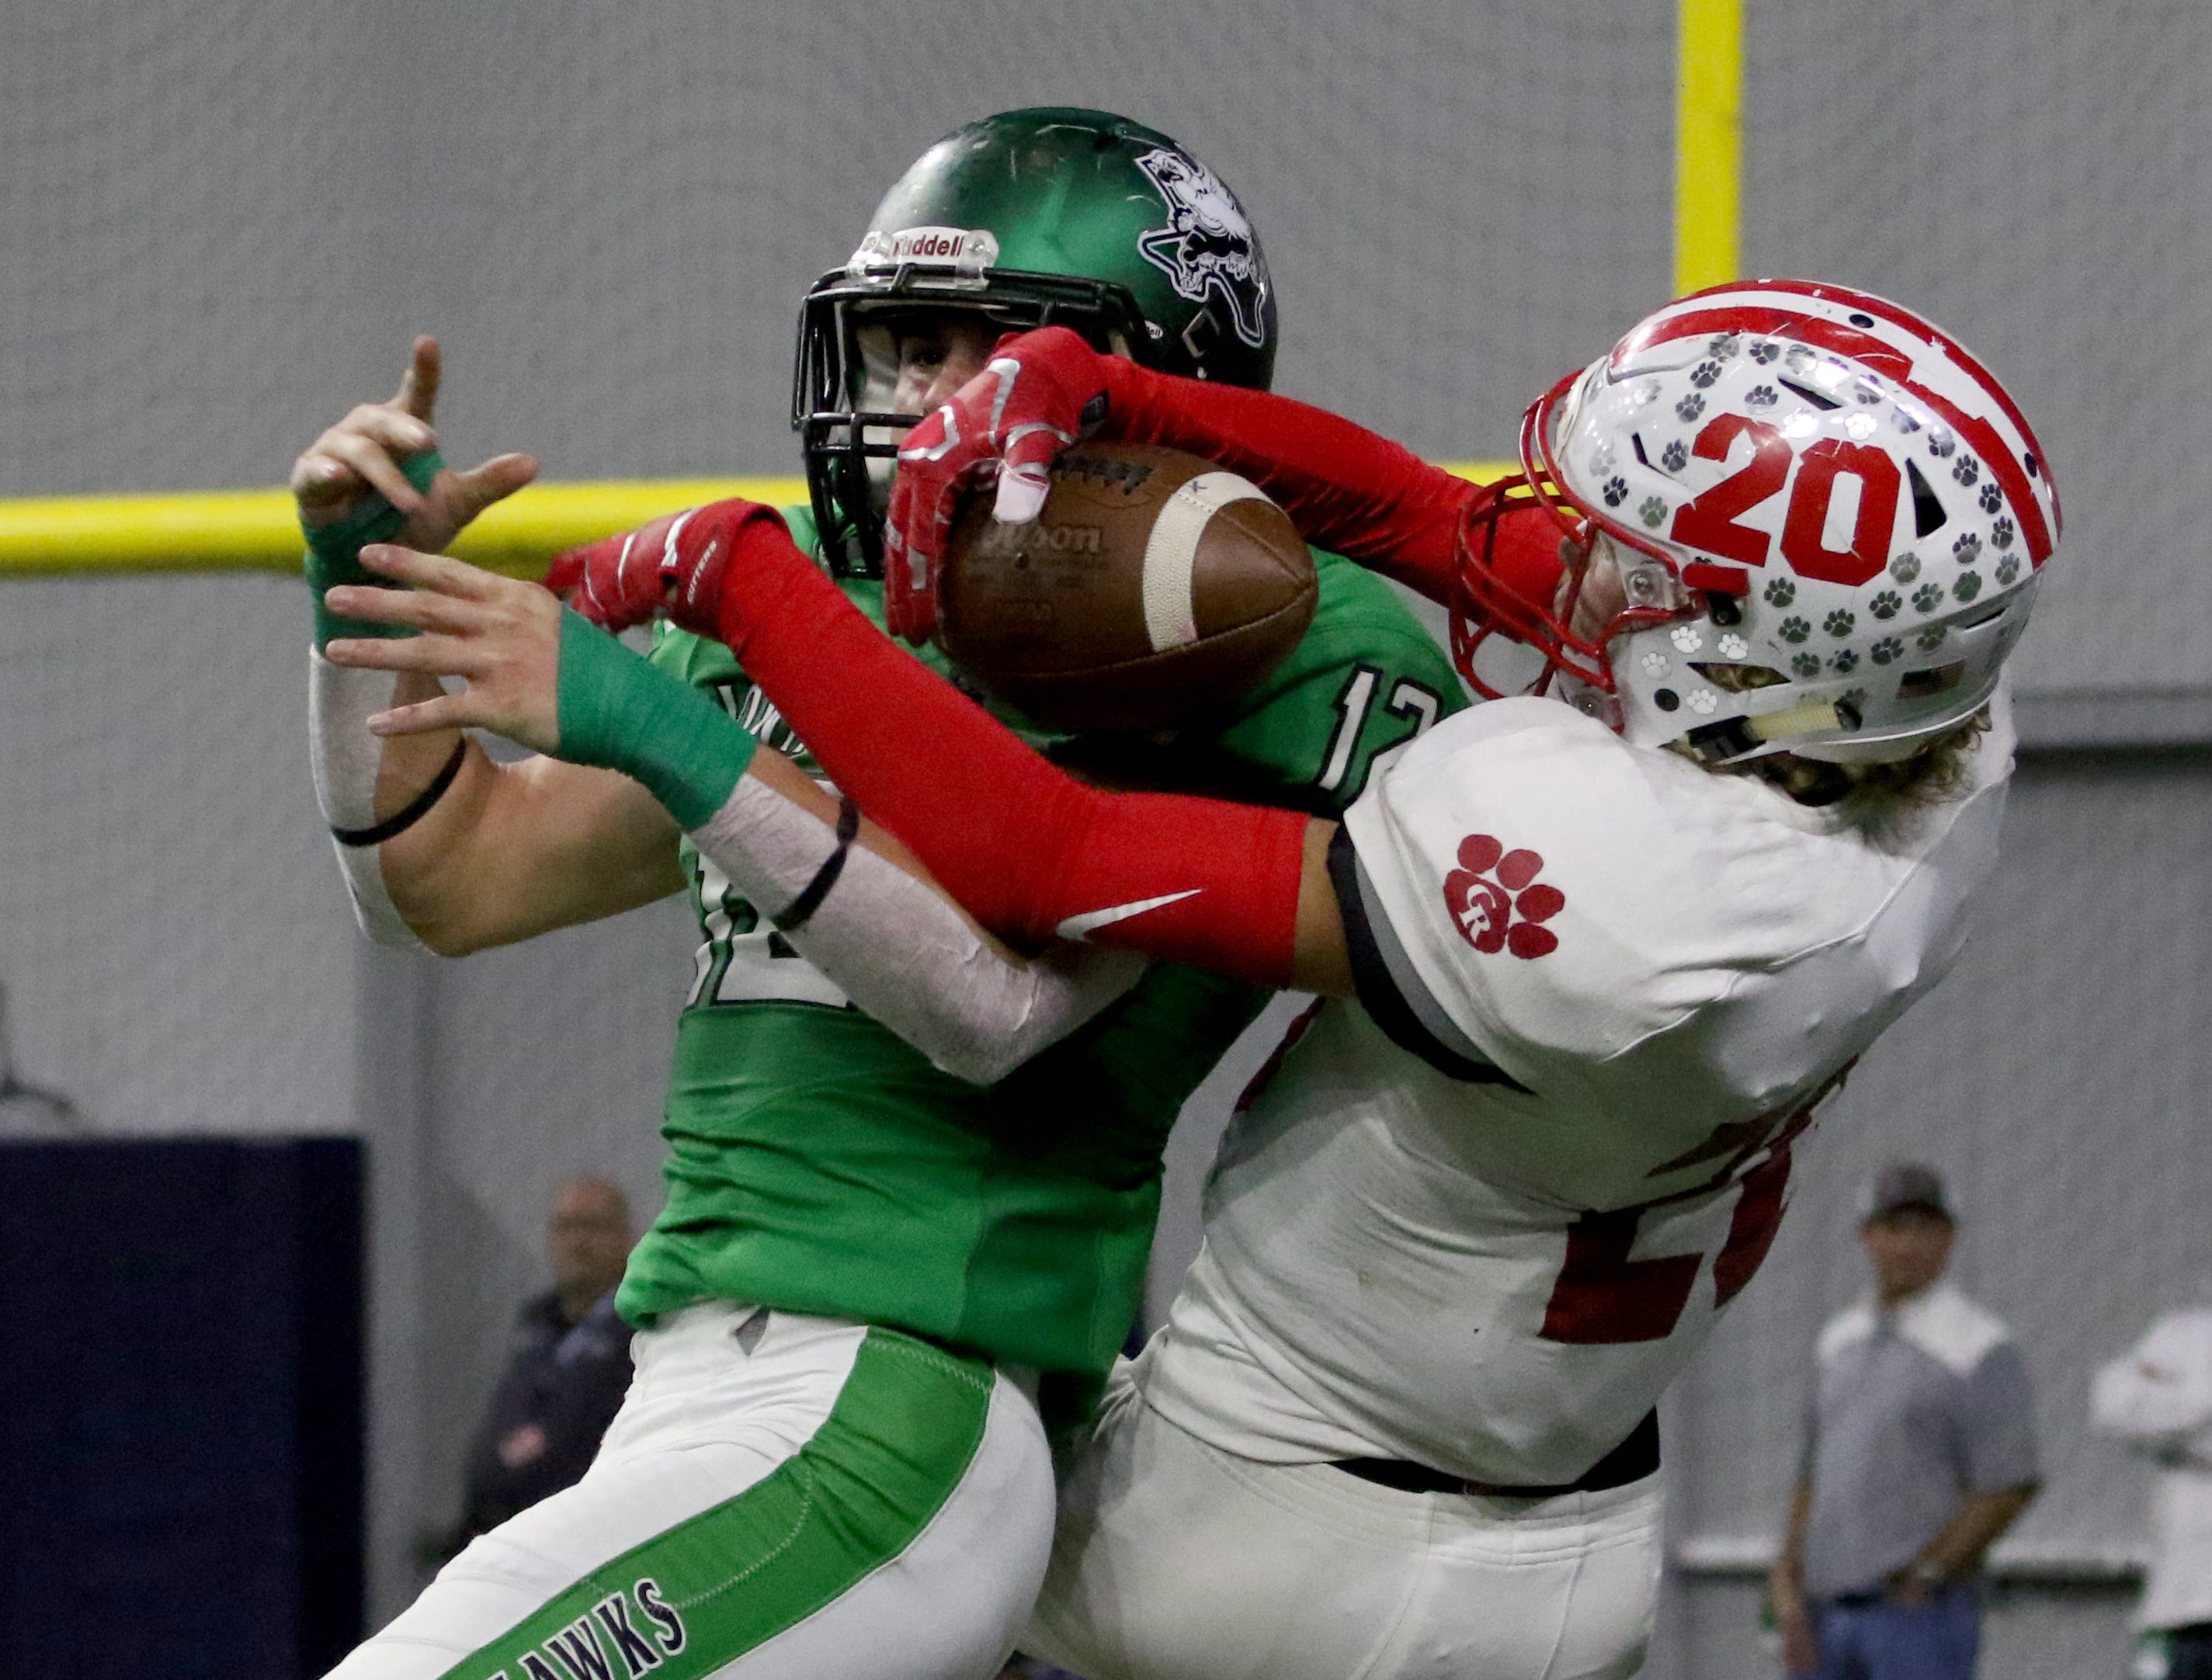 Glen Rose's Teddy Starnes makes the catch over Iowa Park's Reid Lalk Friday, Dec. 7, 2018, at the Ford Center in Frisco. The Hawks defeated the Tigers 31-28.